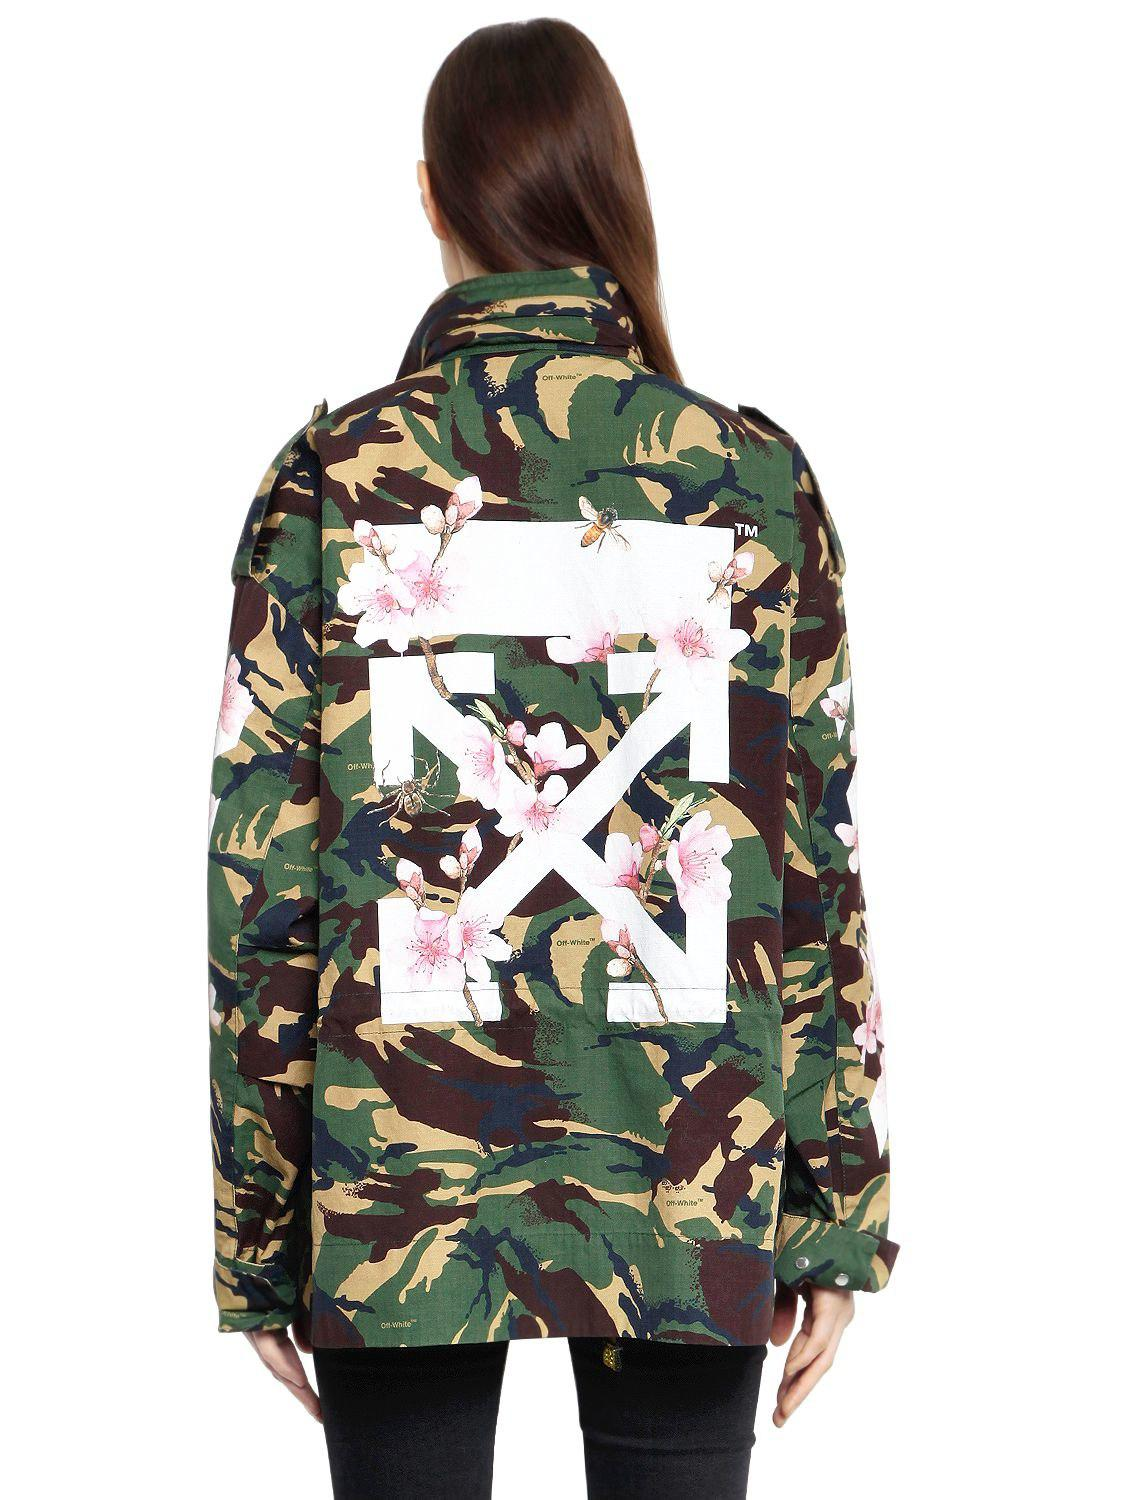 42bbfd24b20c8 Off-White c/o Virgil Abloh M65 Camo & Cherry Blossom Field Jacket in ...